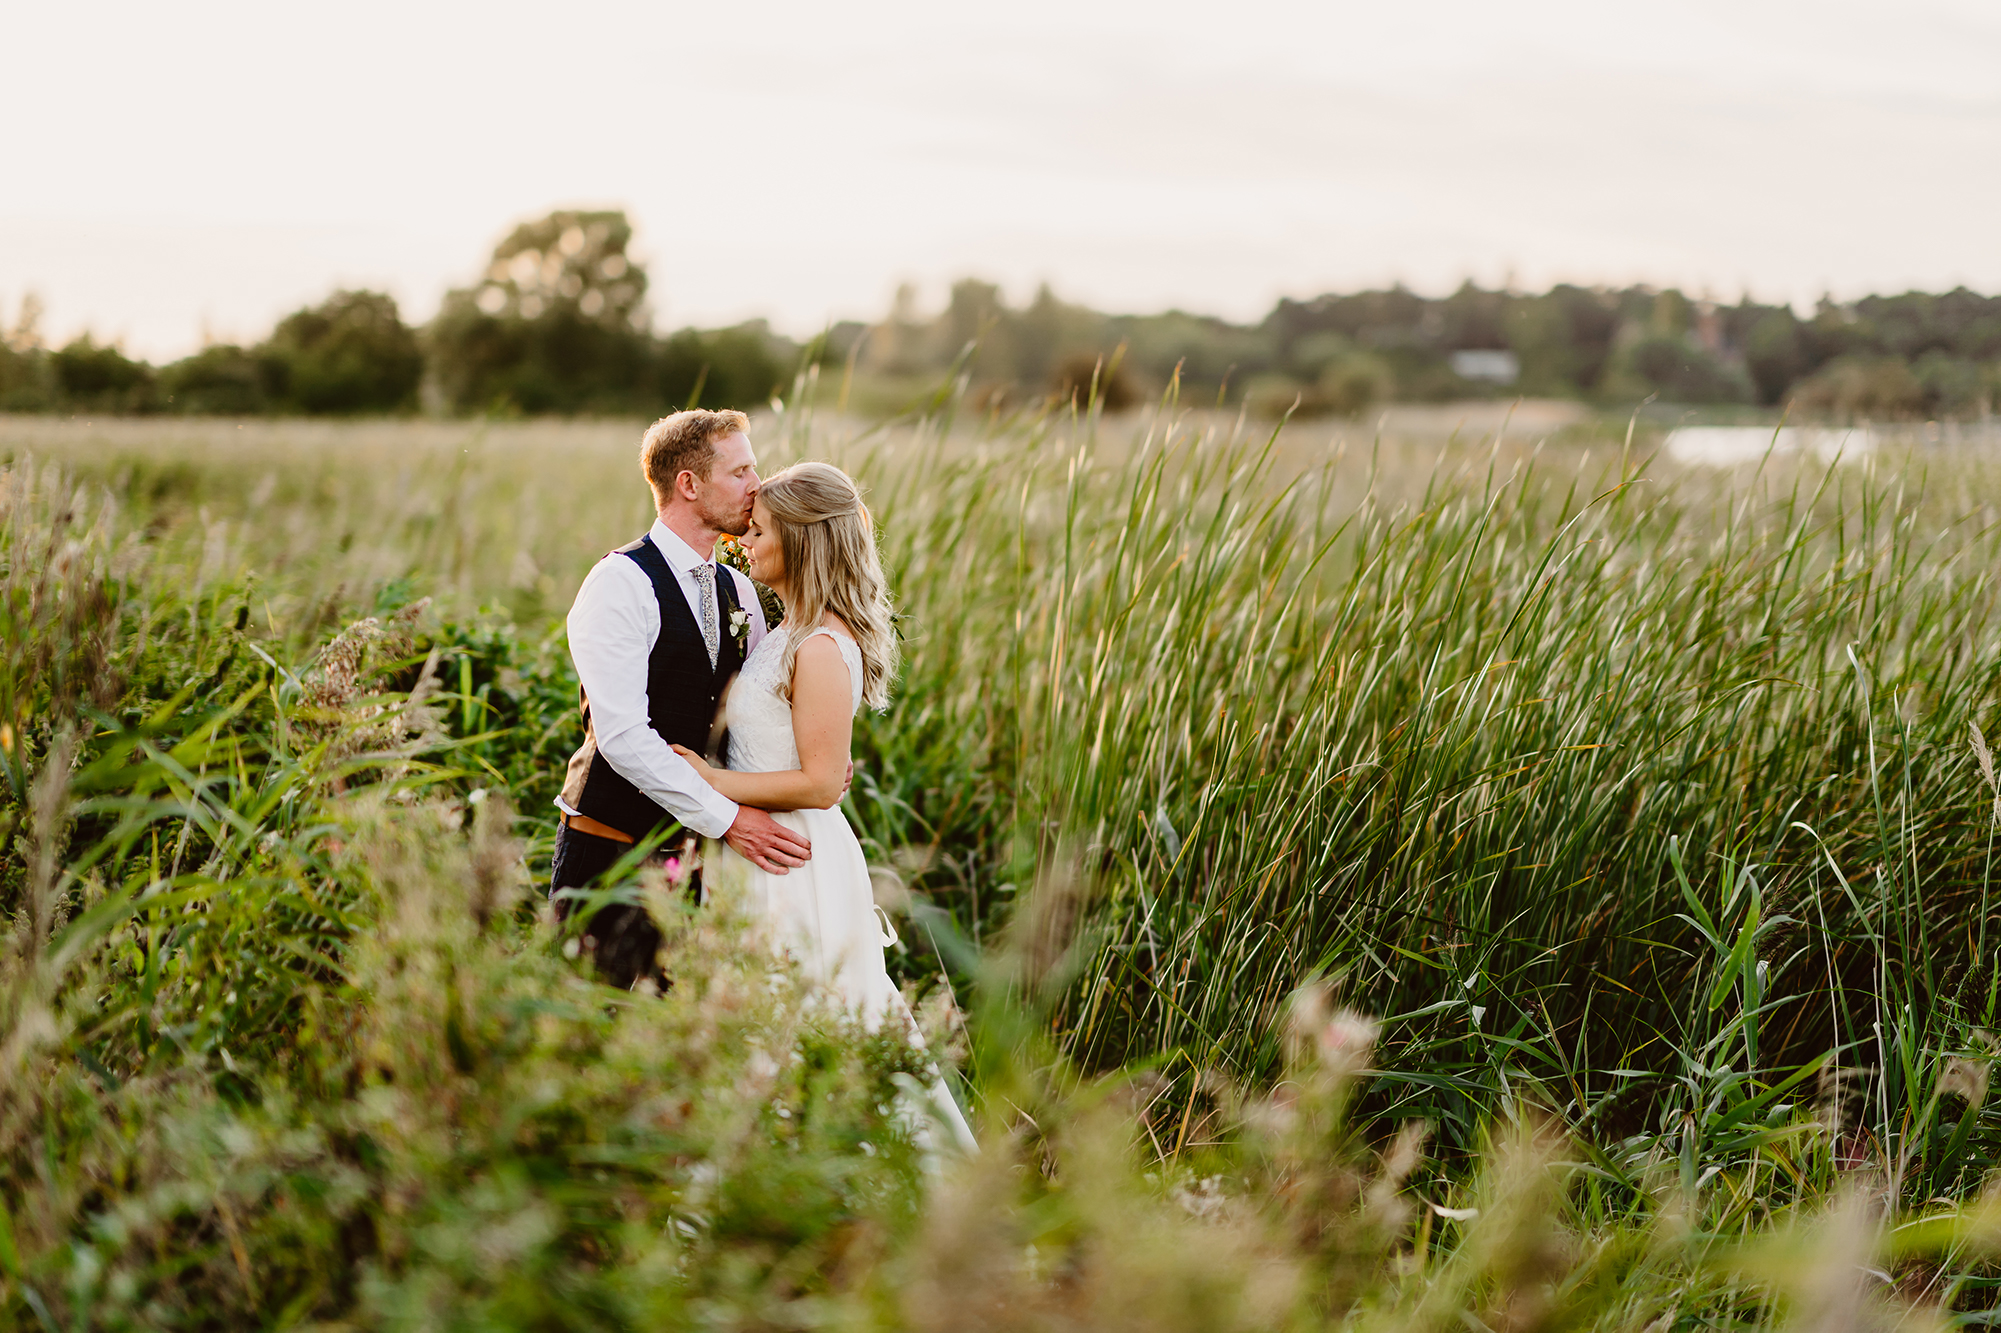 Newlyweds Share Hug and Kiss at Ivy House Country Hotel Gardens